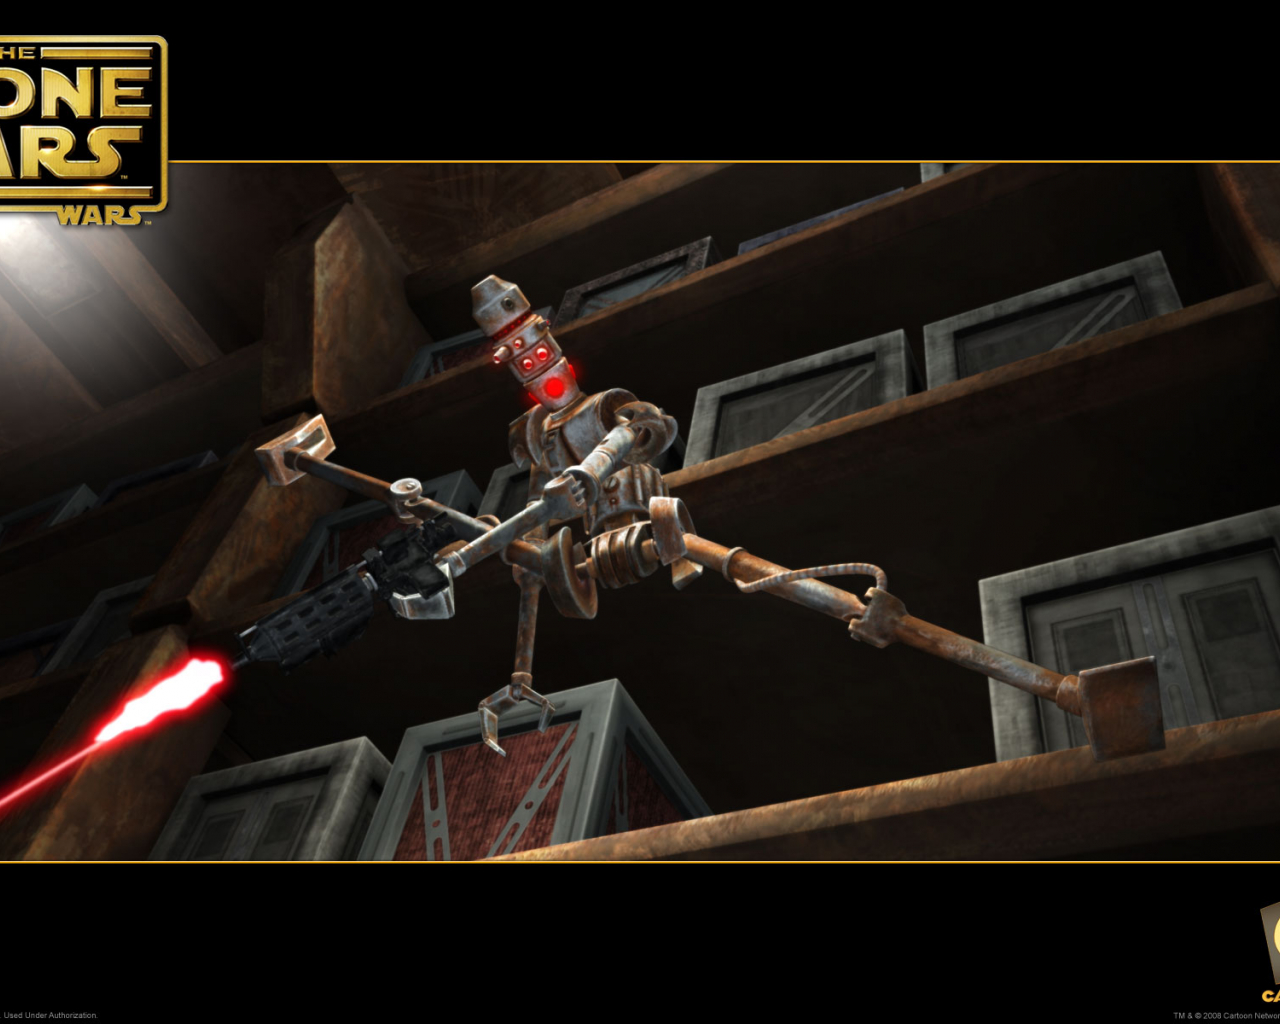 Free Download Star Wars The Clone Wars Assassin Droid Wallpaperjpg 1920x1200 For Your Desktop Mobile Tablet Explore 77 Star Wars The Clone Wars Wallpaper Animated Star Wars Wallpapers Surface